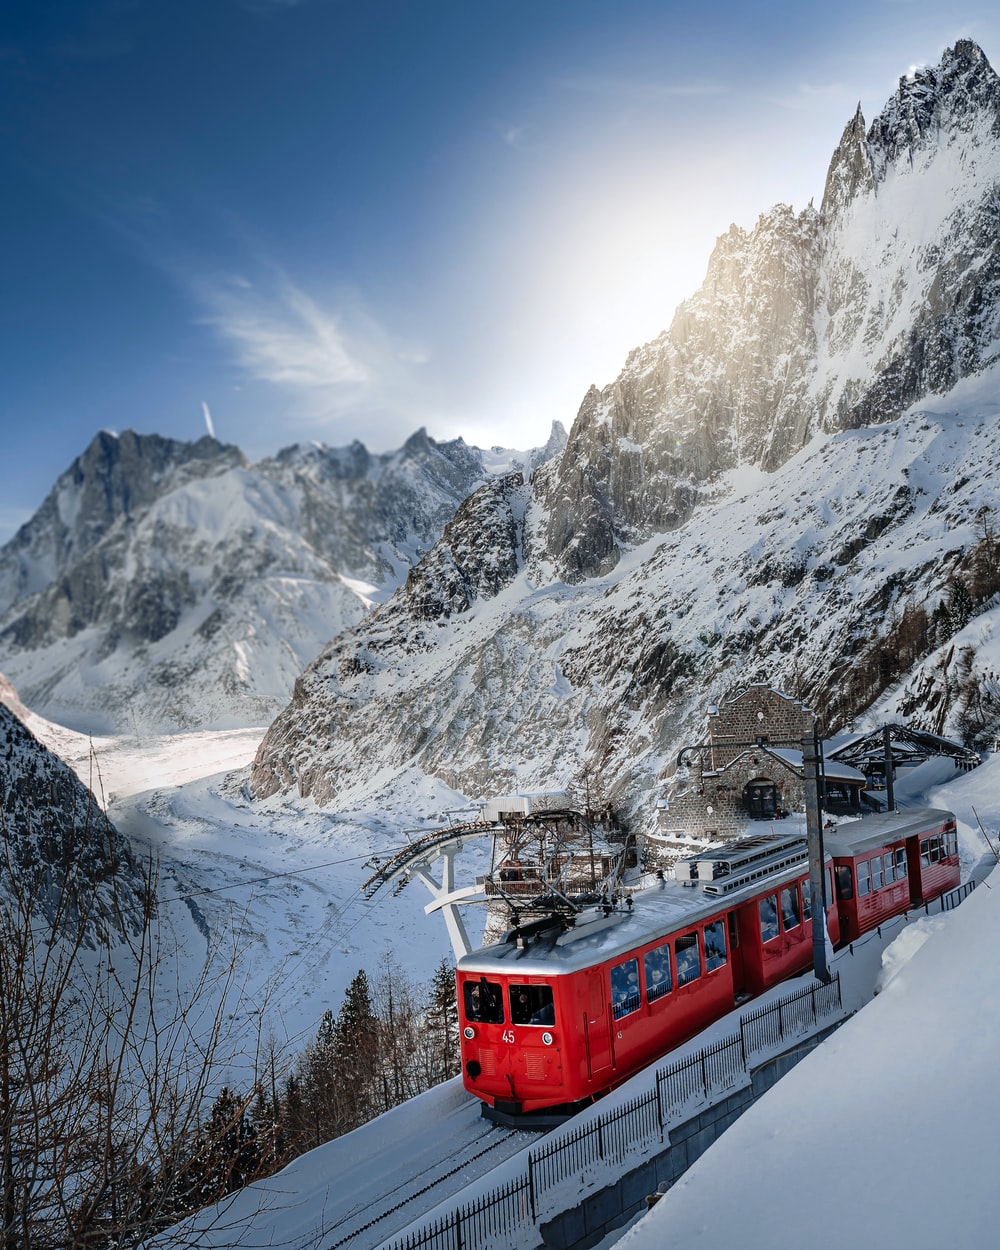 red and white train on snow covered mountain during daytime